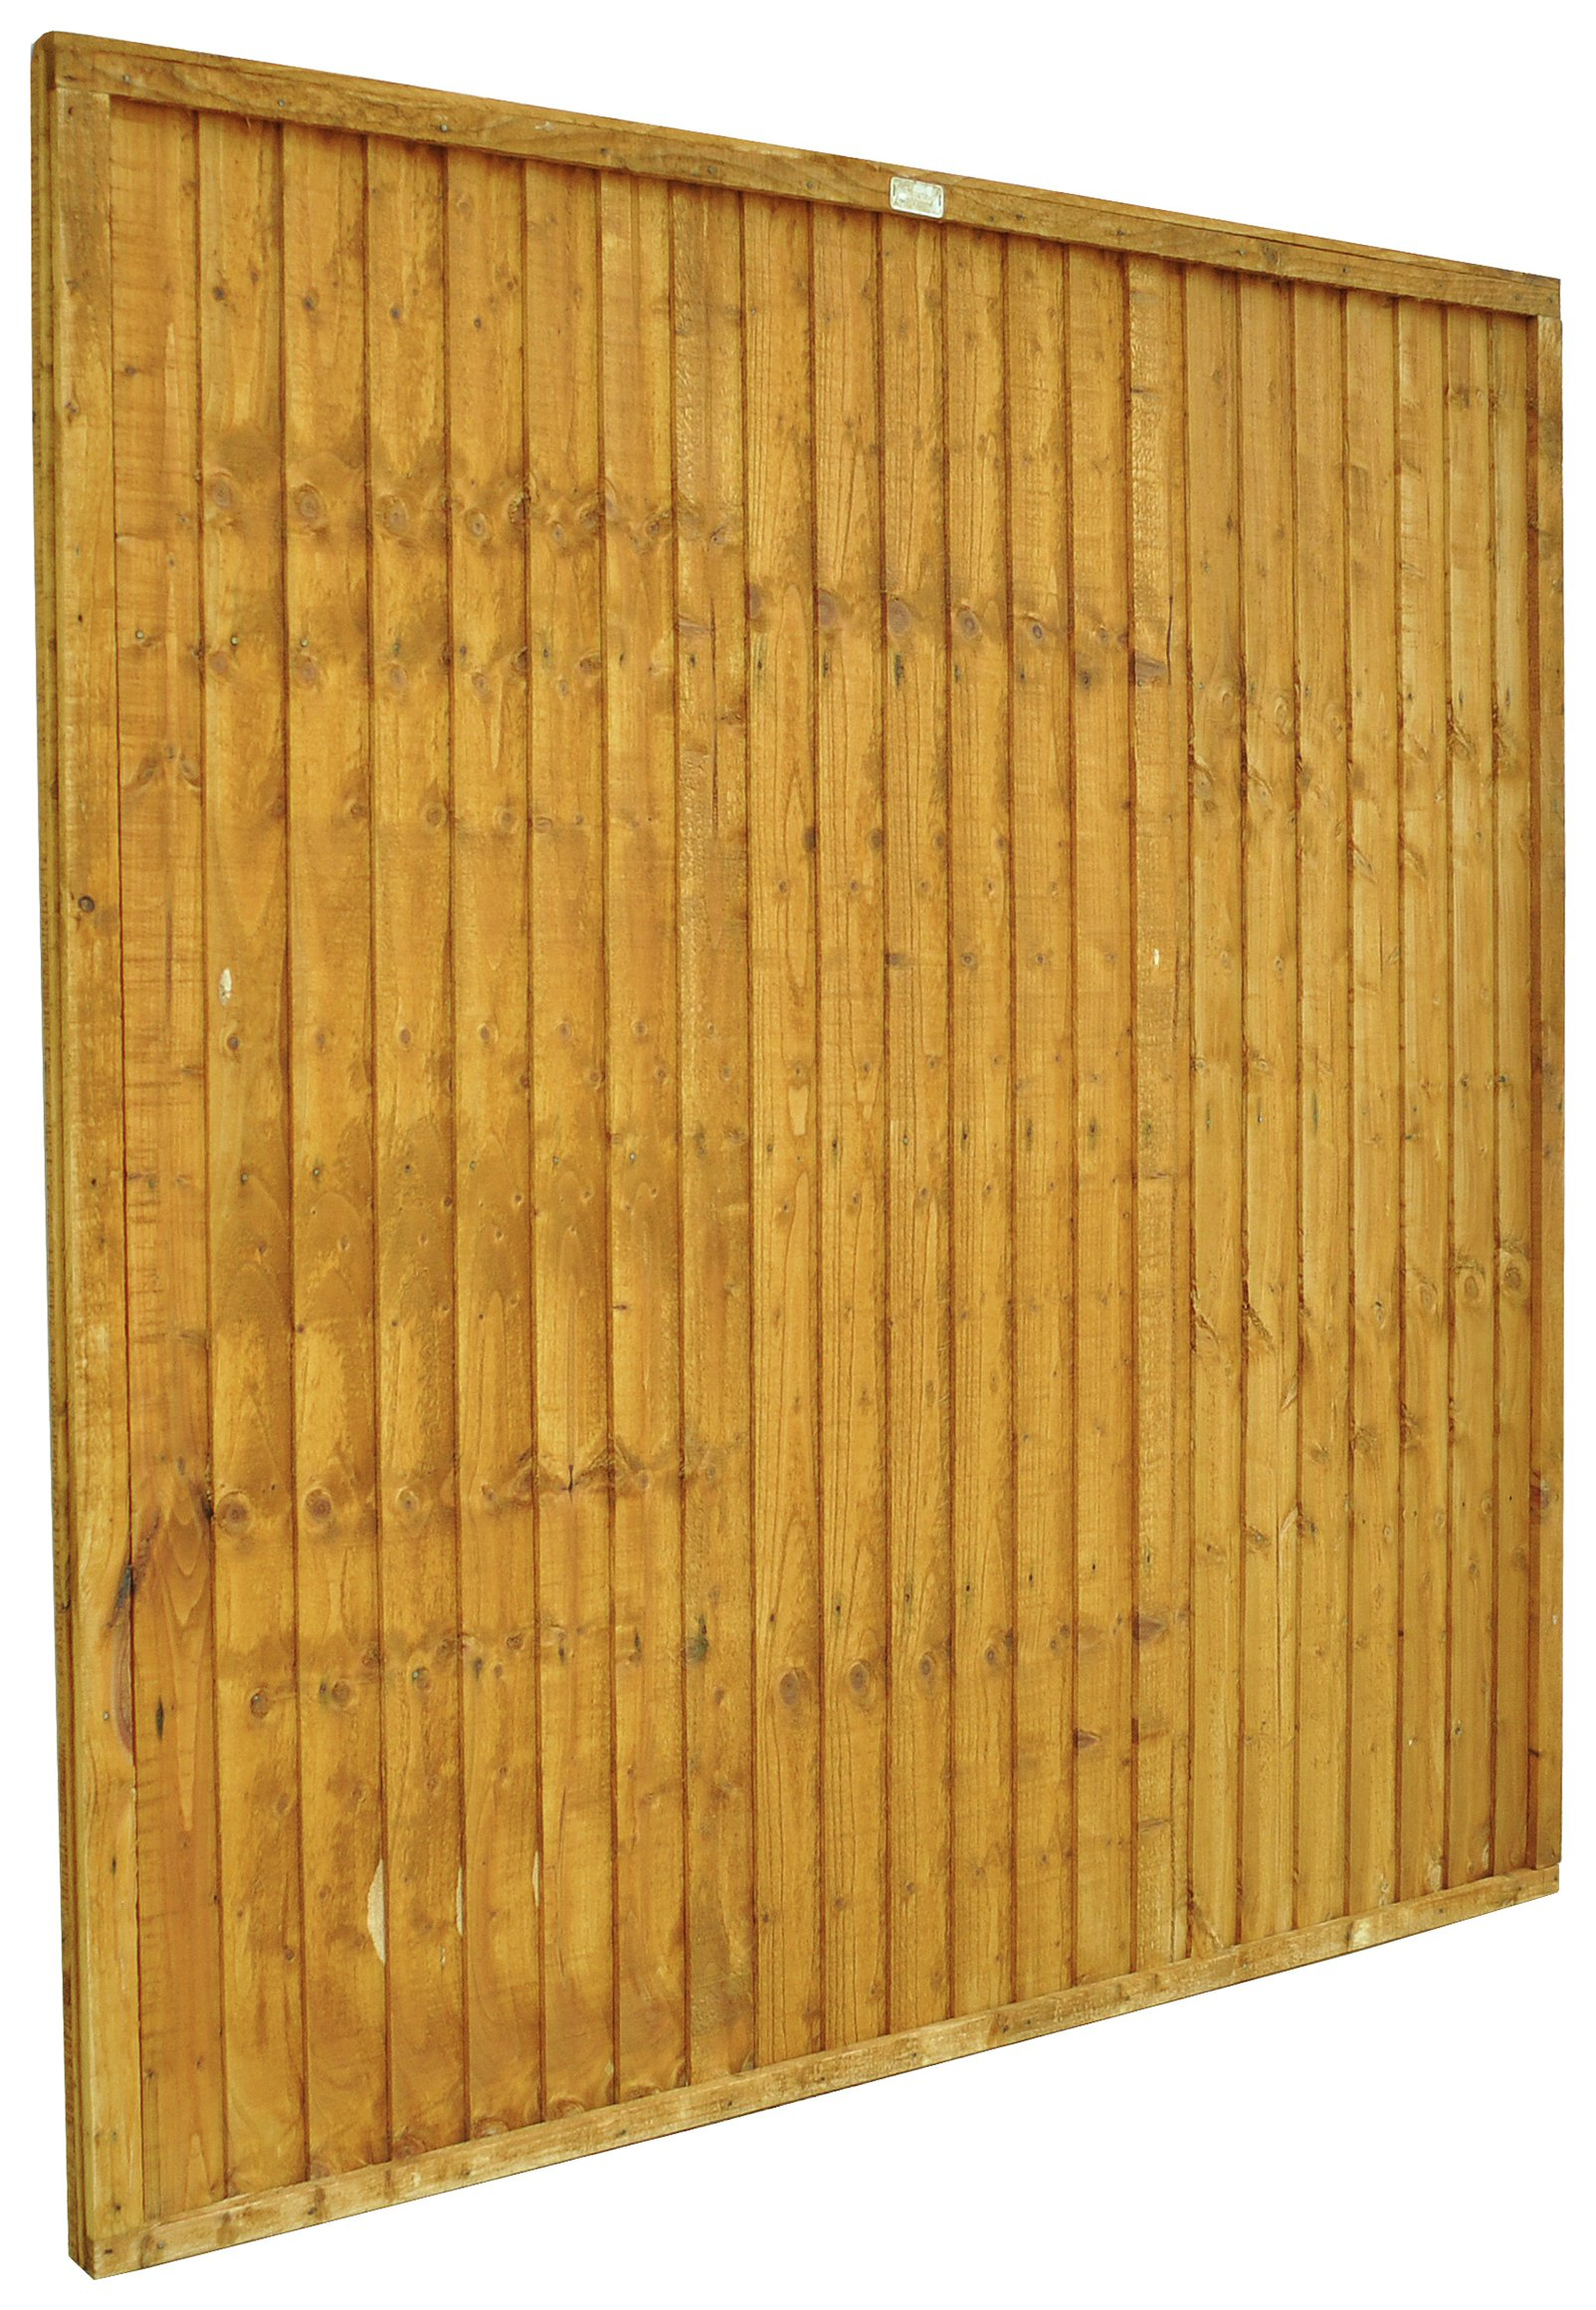 Forest 1.8m Heavy Duty Closdeboard Fence Panel - Pack of 9. lowest price